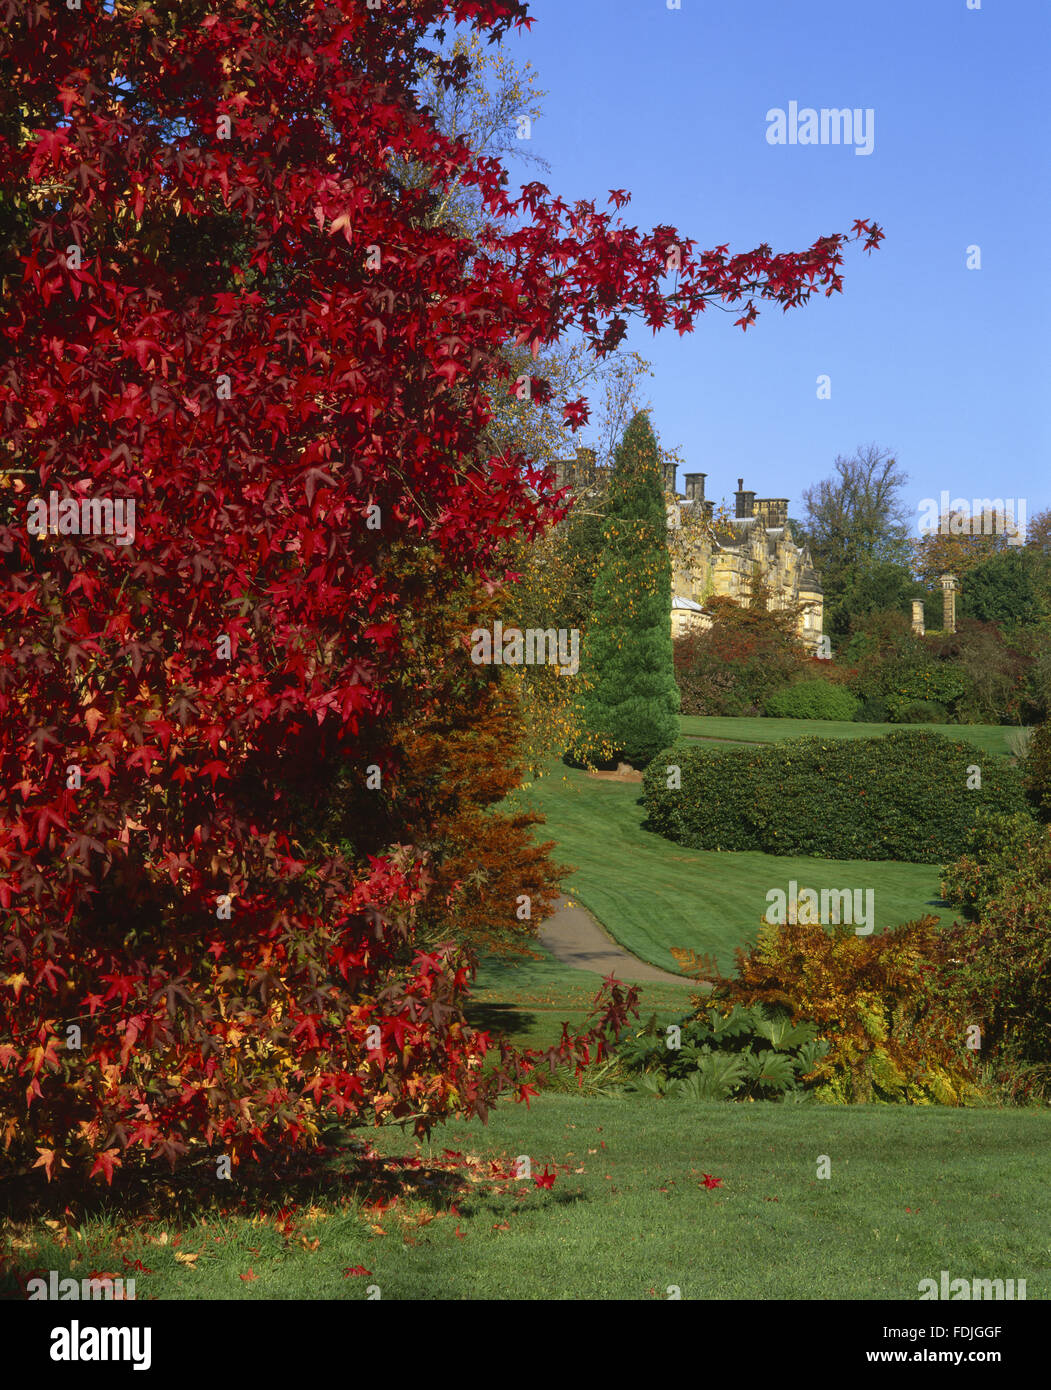 The Victorian house at Scotney Castle, Lamberhurst, Kent, in autumn. - Stock Image